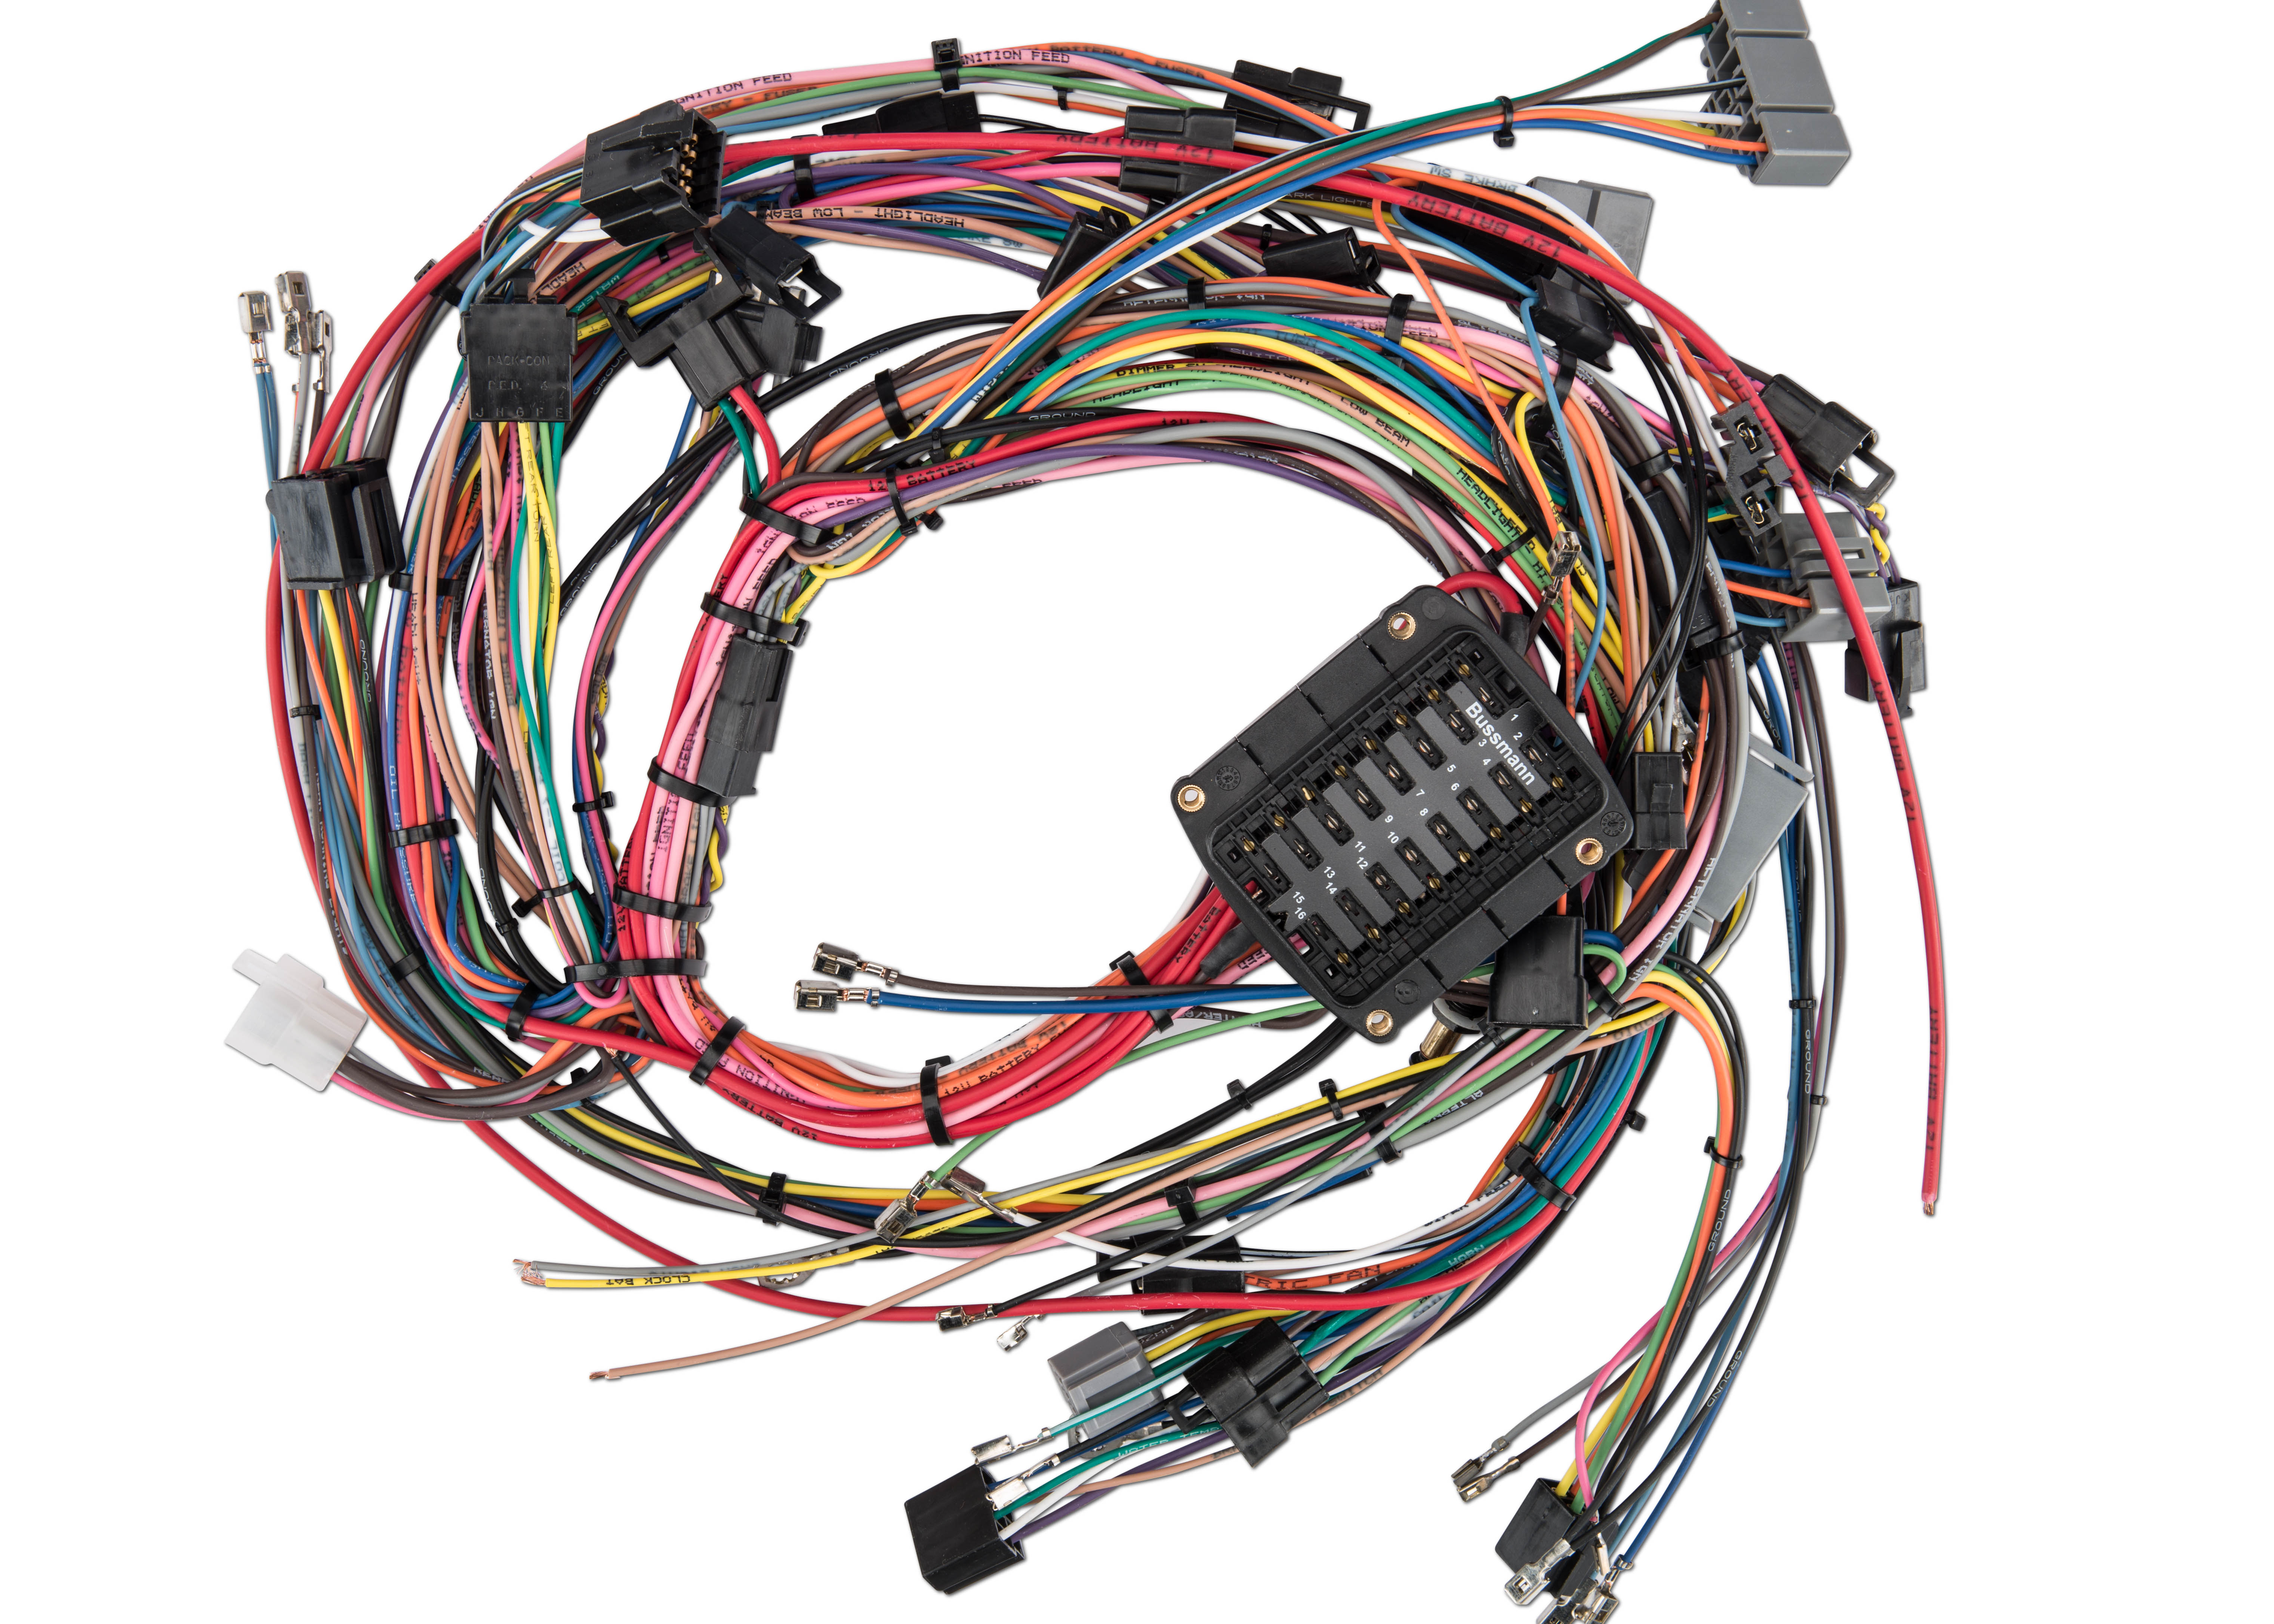 Engine Wiring Harness For Coyote Pictures To Pin On Pinterest - 1973 ford mustang wiring harness diagram